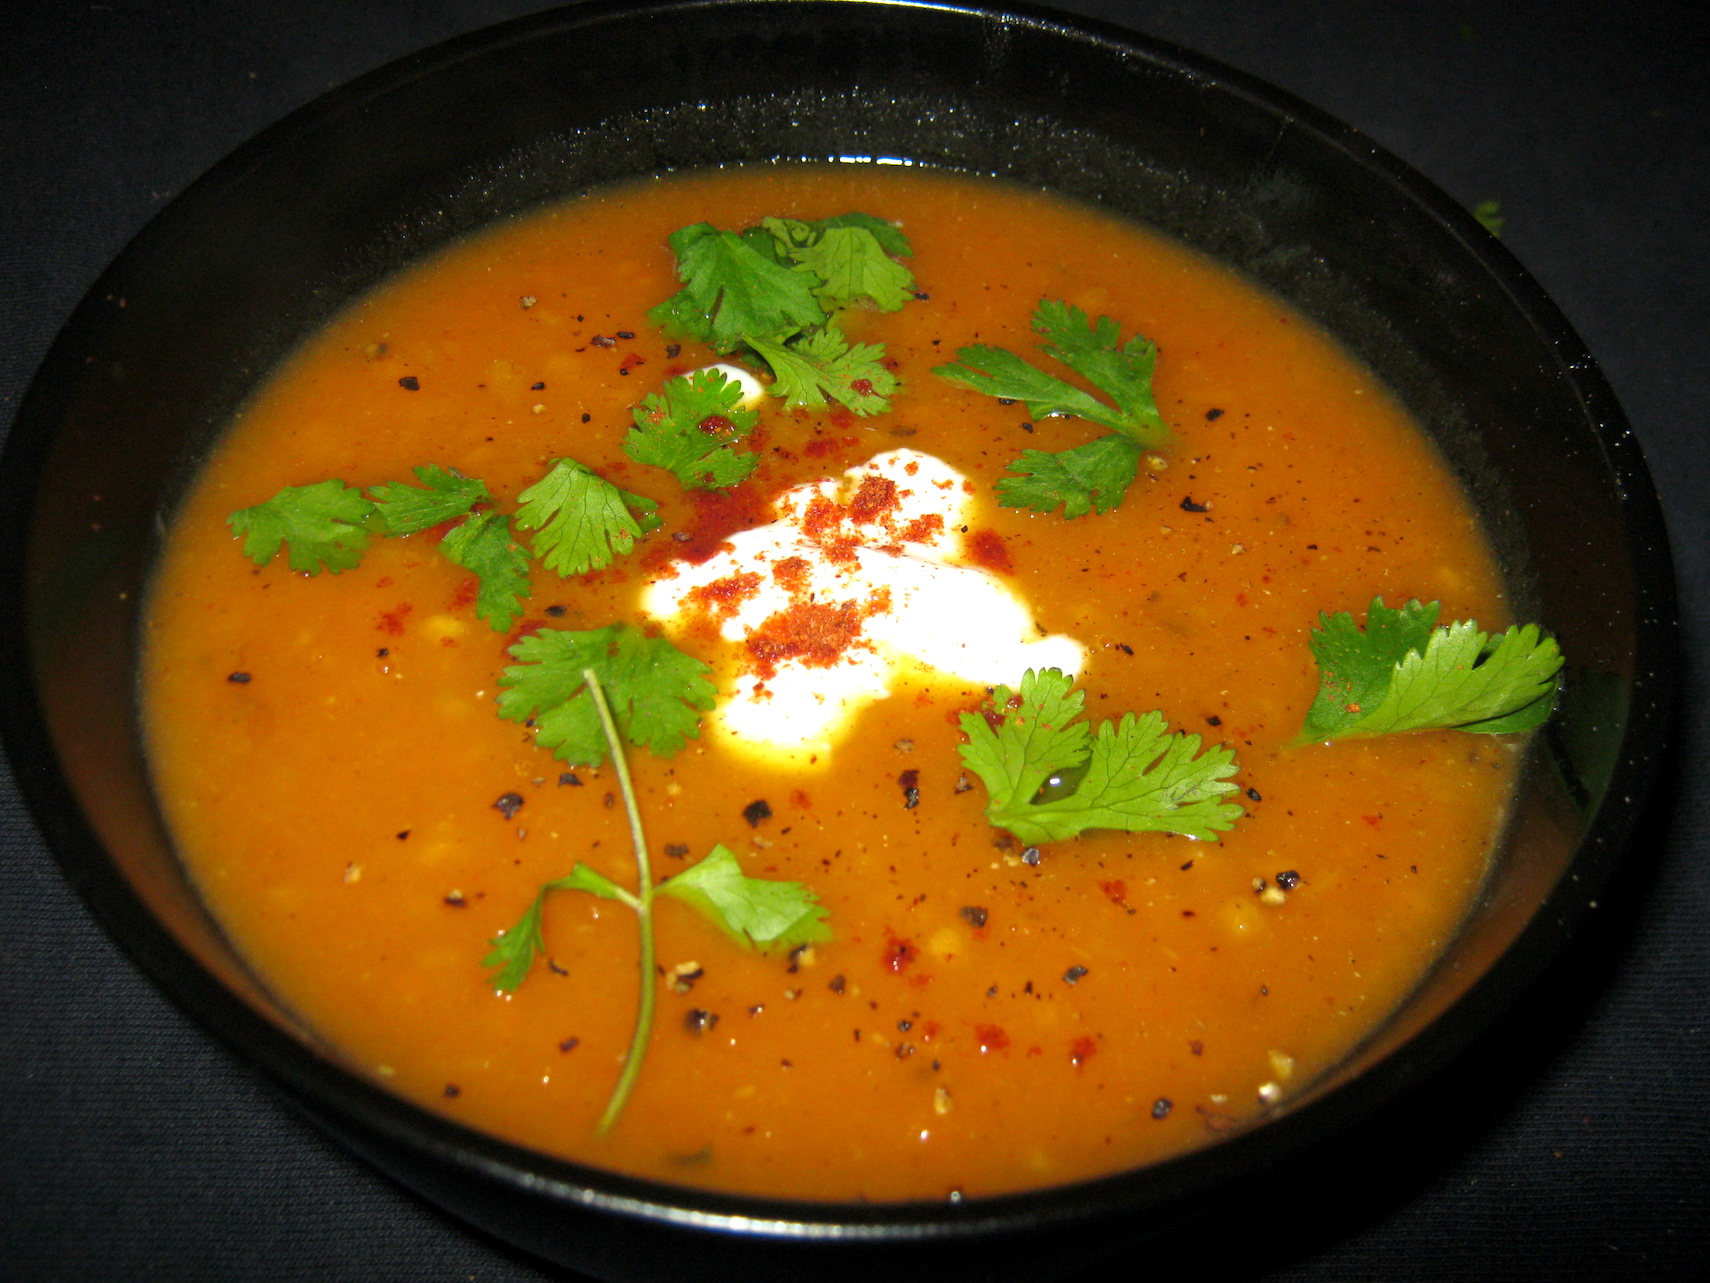 South African Sweet Potato Soup ala Alicia